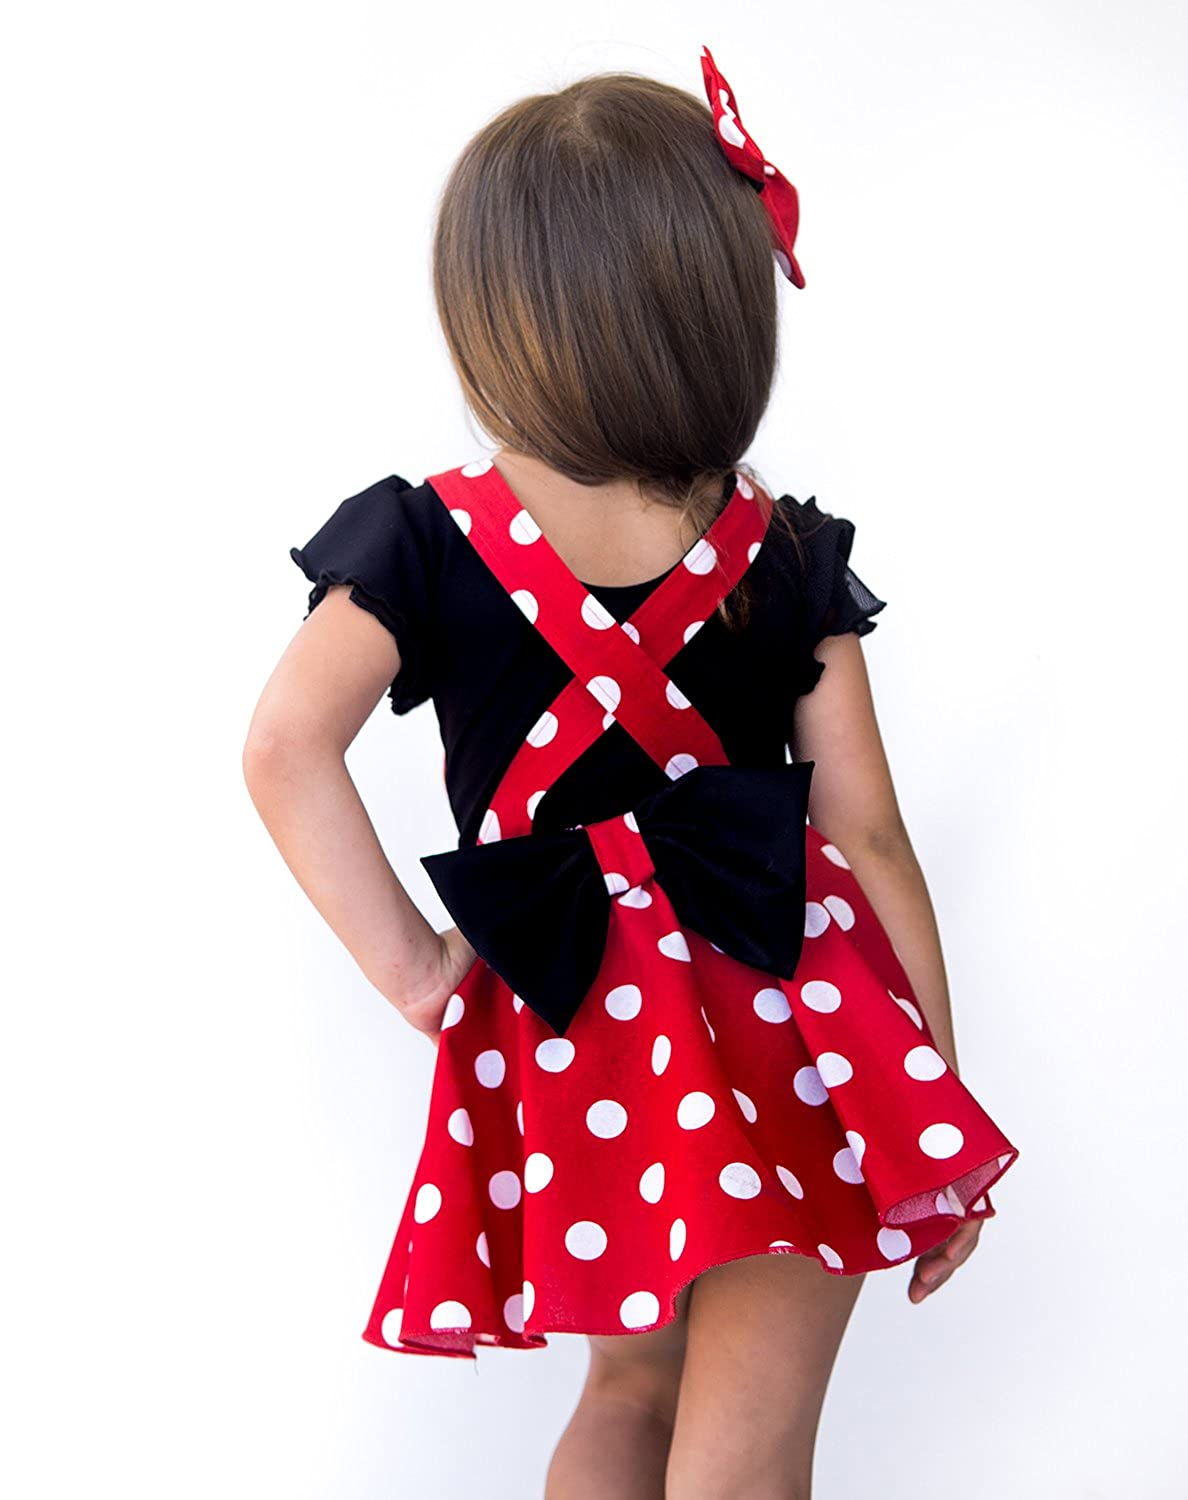 bd19a0a3146 Amazon.com  Myx Couture Baby Girl Minnie Mouse Birthday Outfit Polka Dots  Skirt with a Matching Hairbow  Clothing